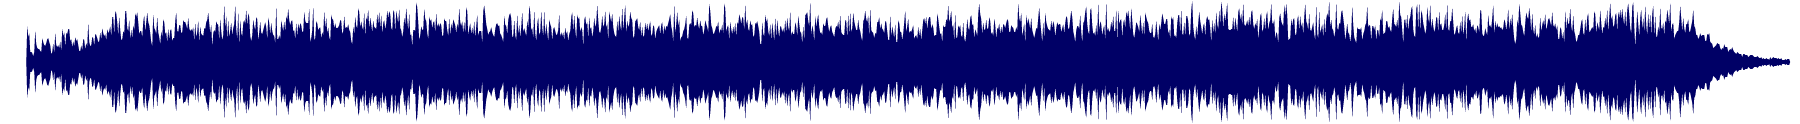 waveform of track #76001